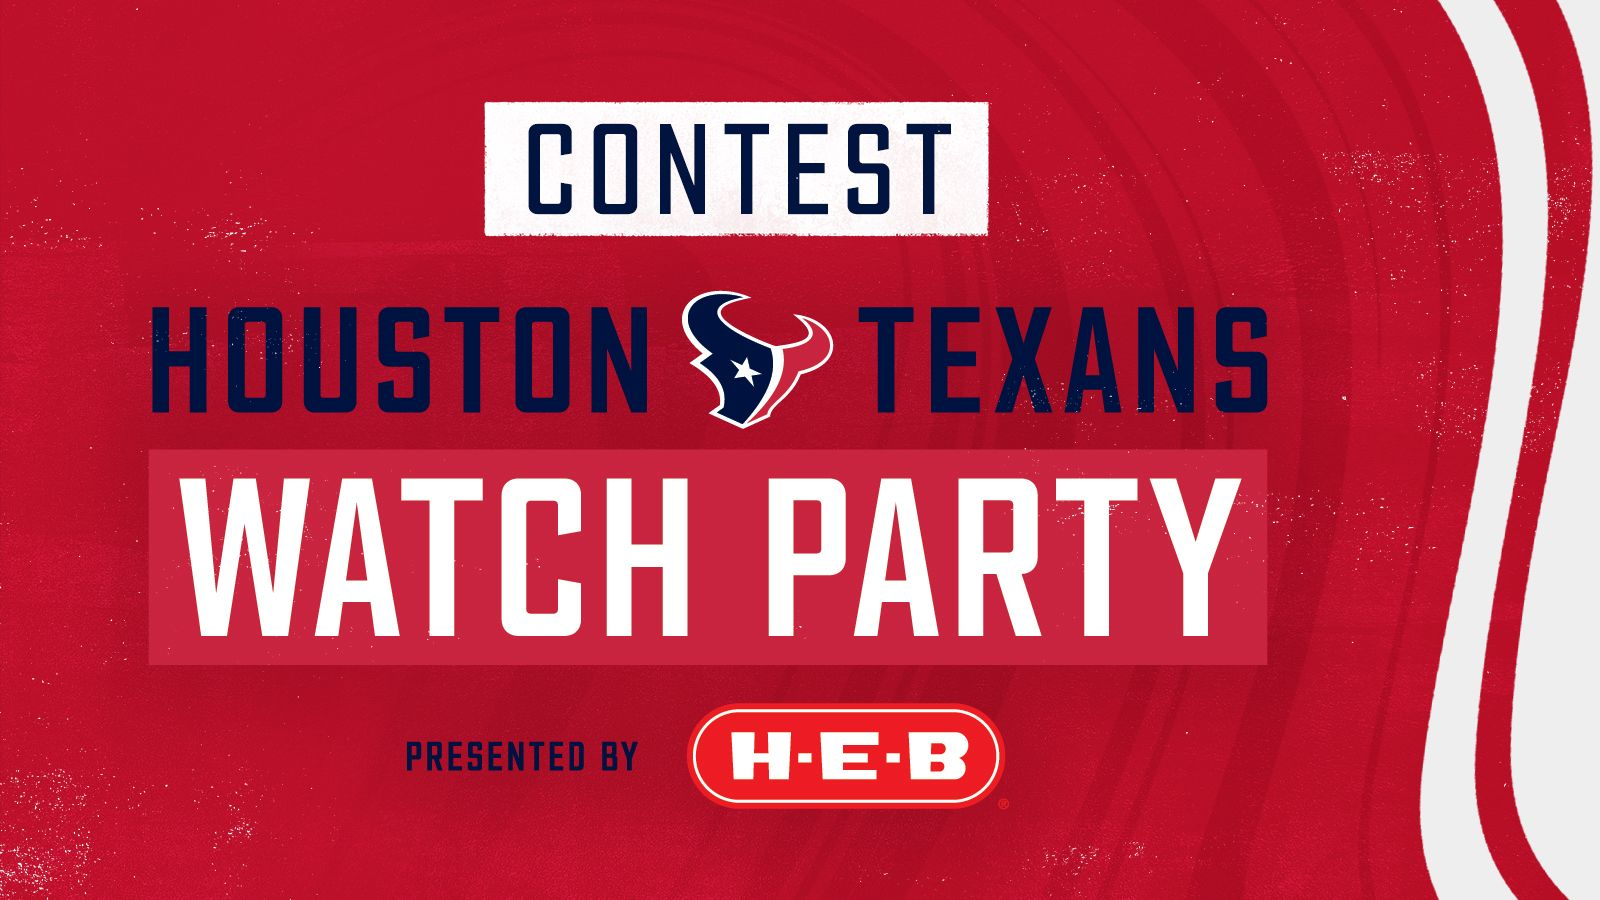 Houston Texans Watch Party Contest presented by H-E-B